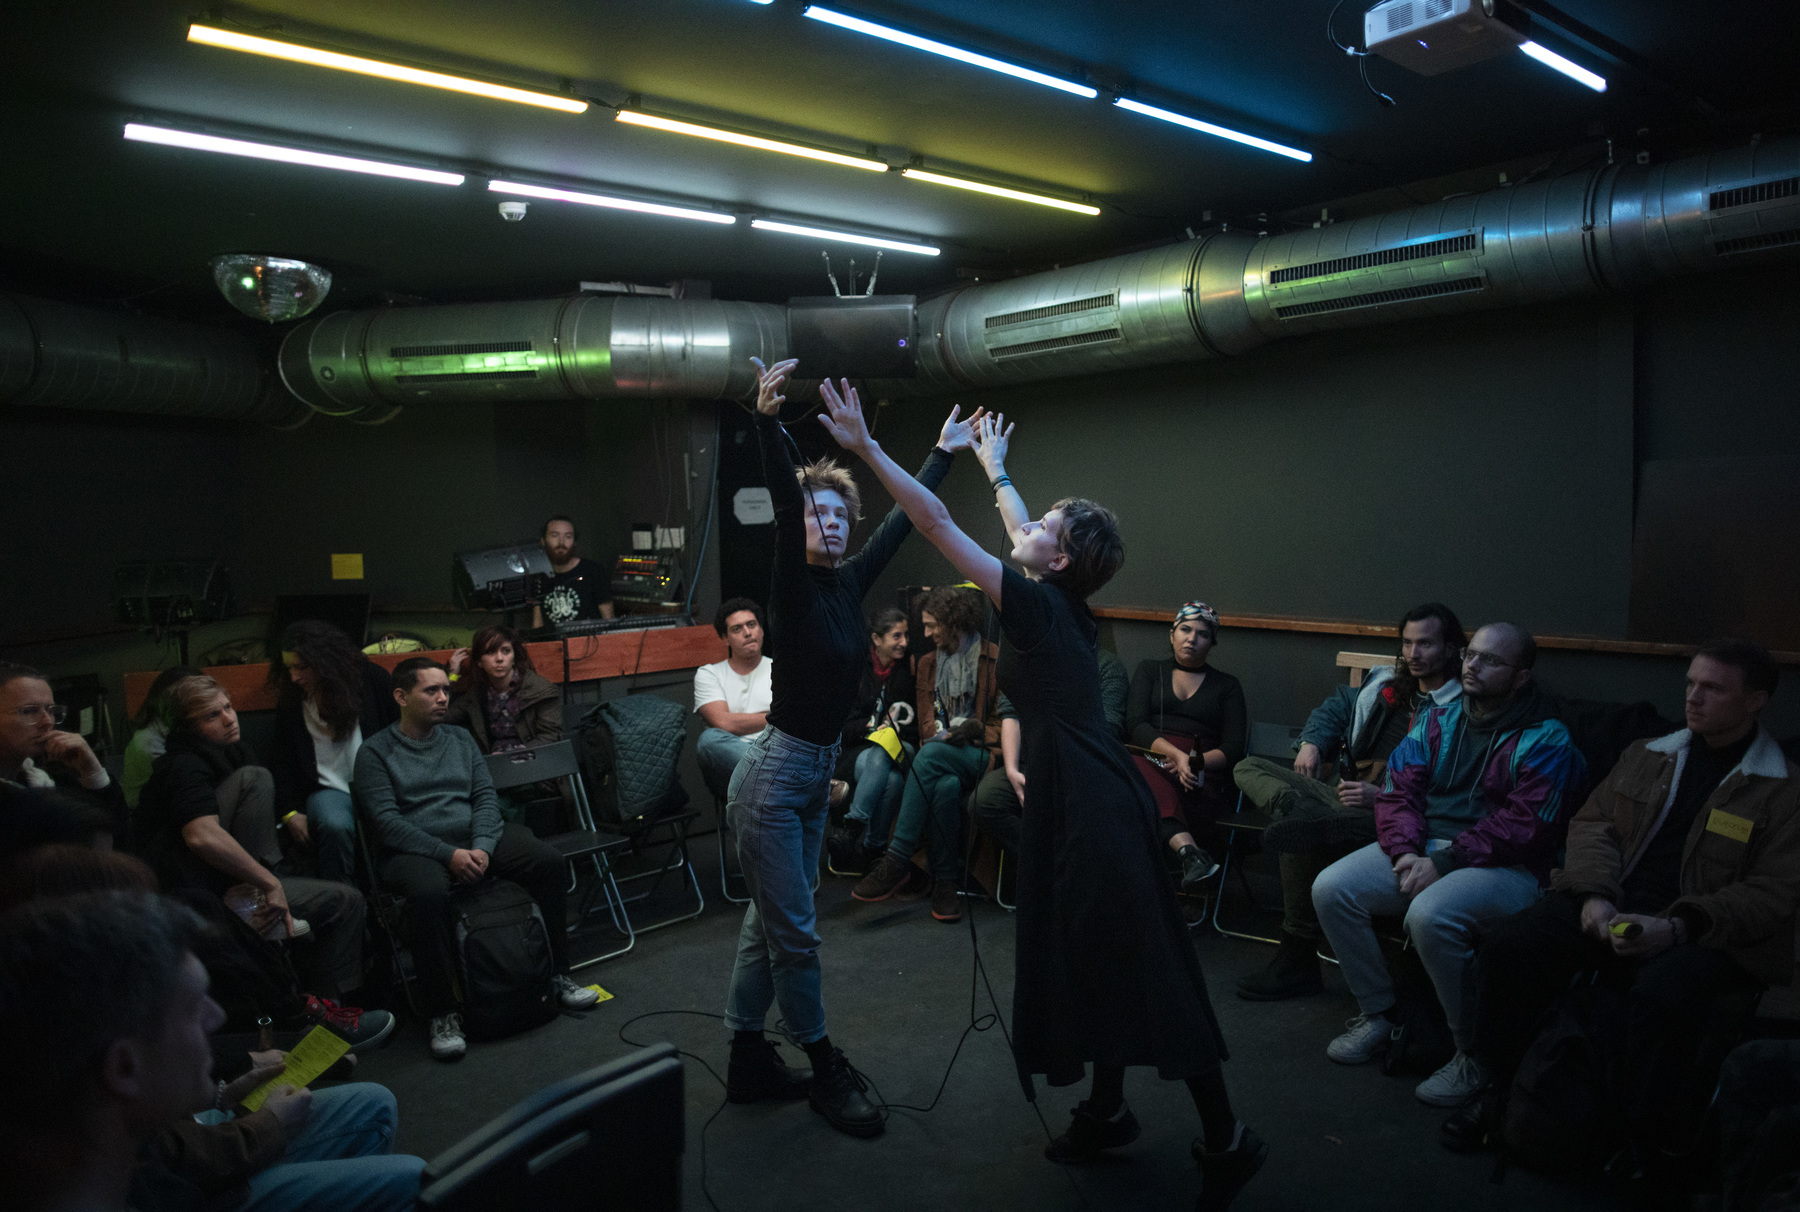 two artists perform in a dark room with audience surrounded